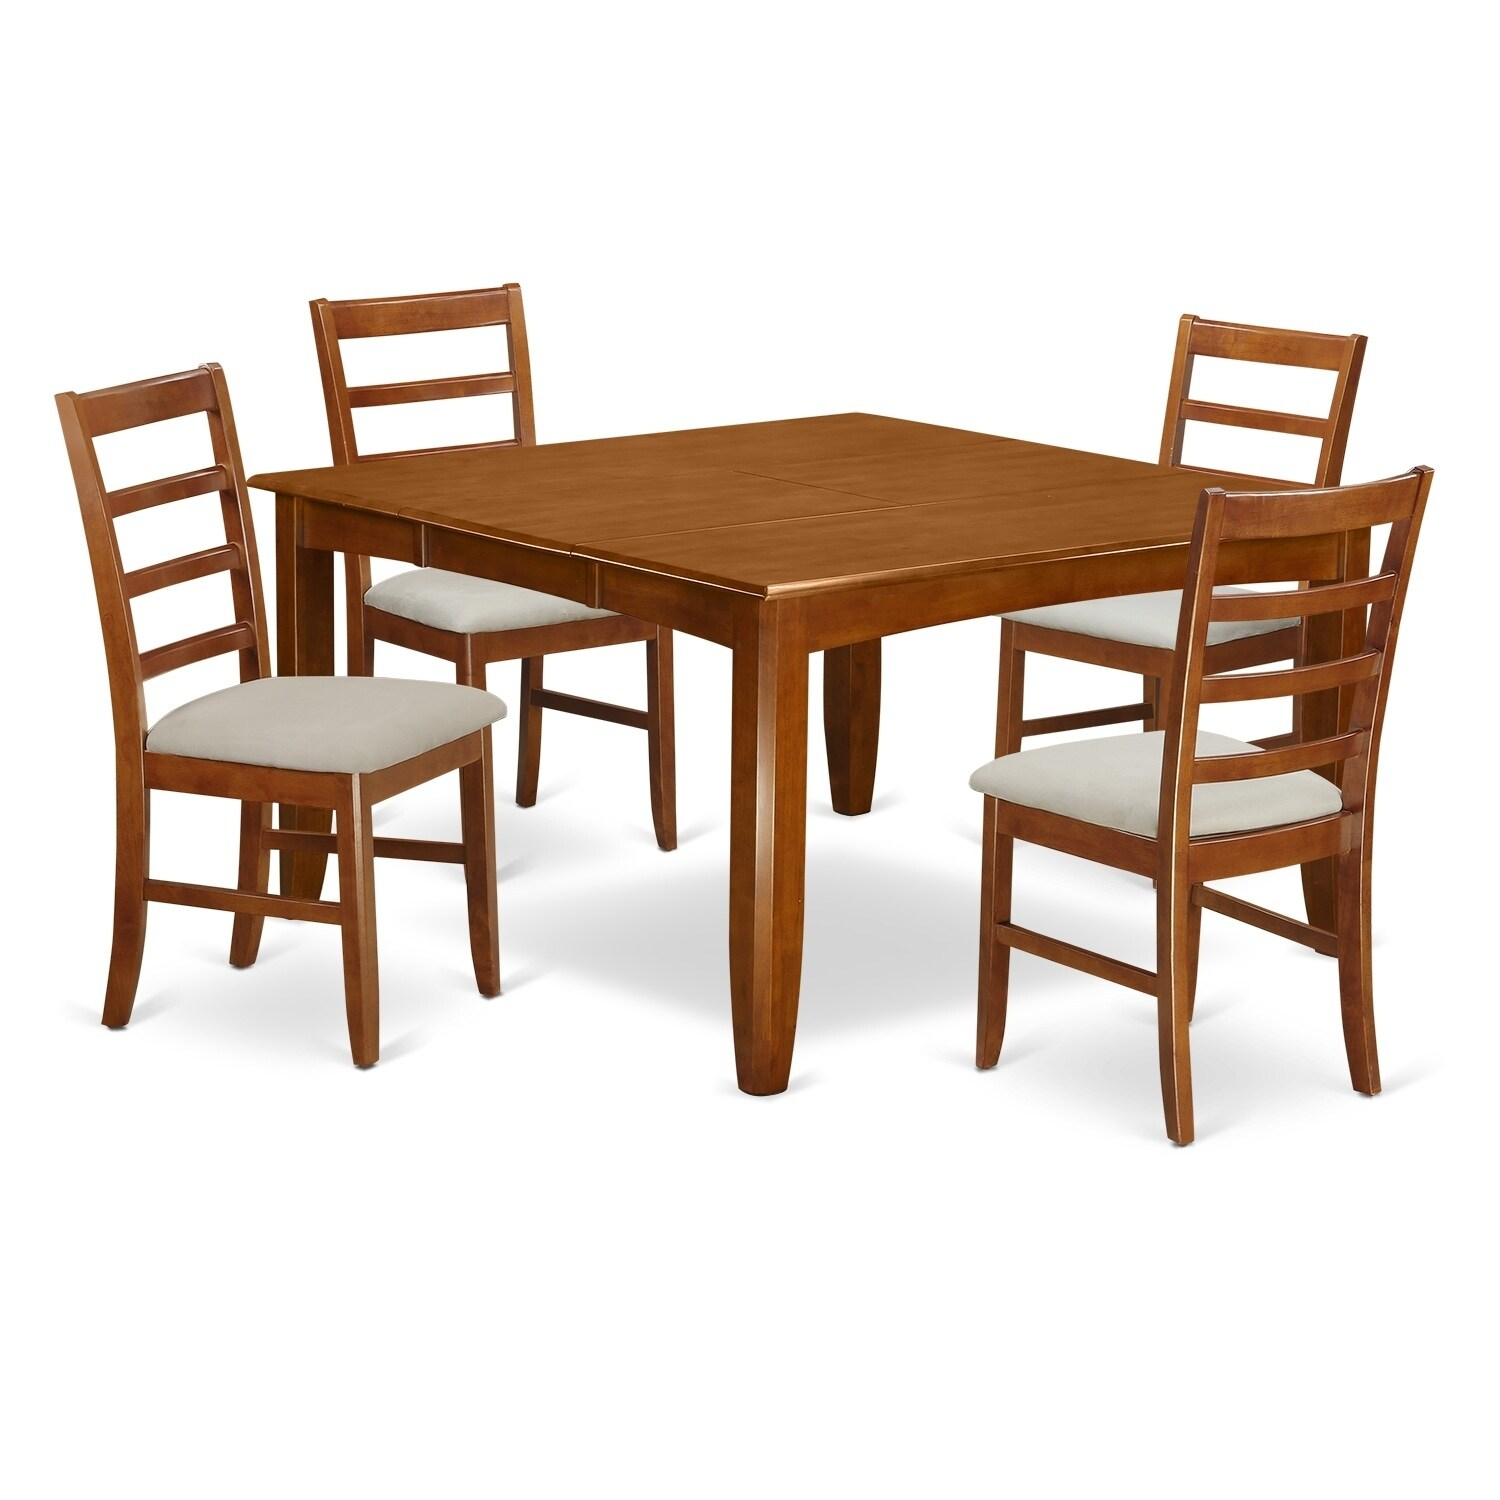 Shop Parf5 Sbr 5 Pc Dining Room Set Square Table And 4 Dining Chairs Overstock 17676489 Rubberwood Wood